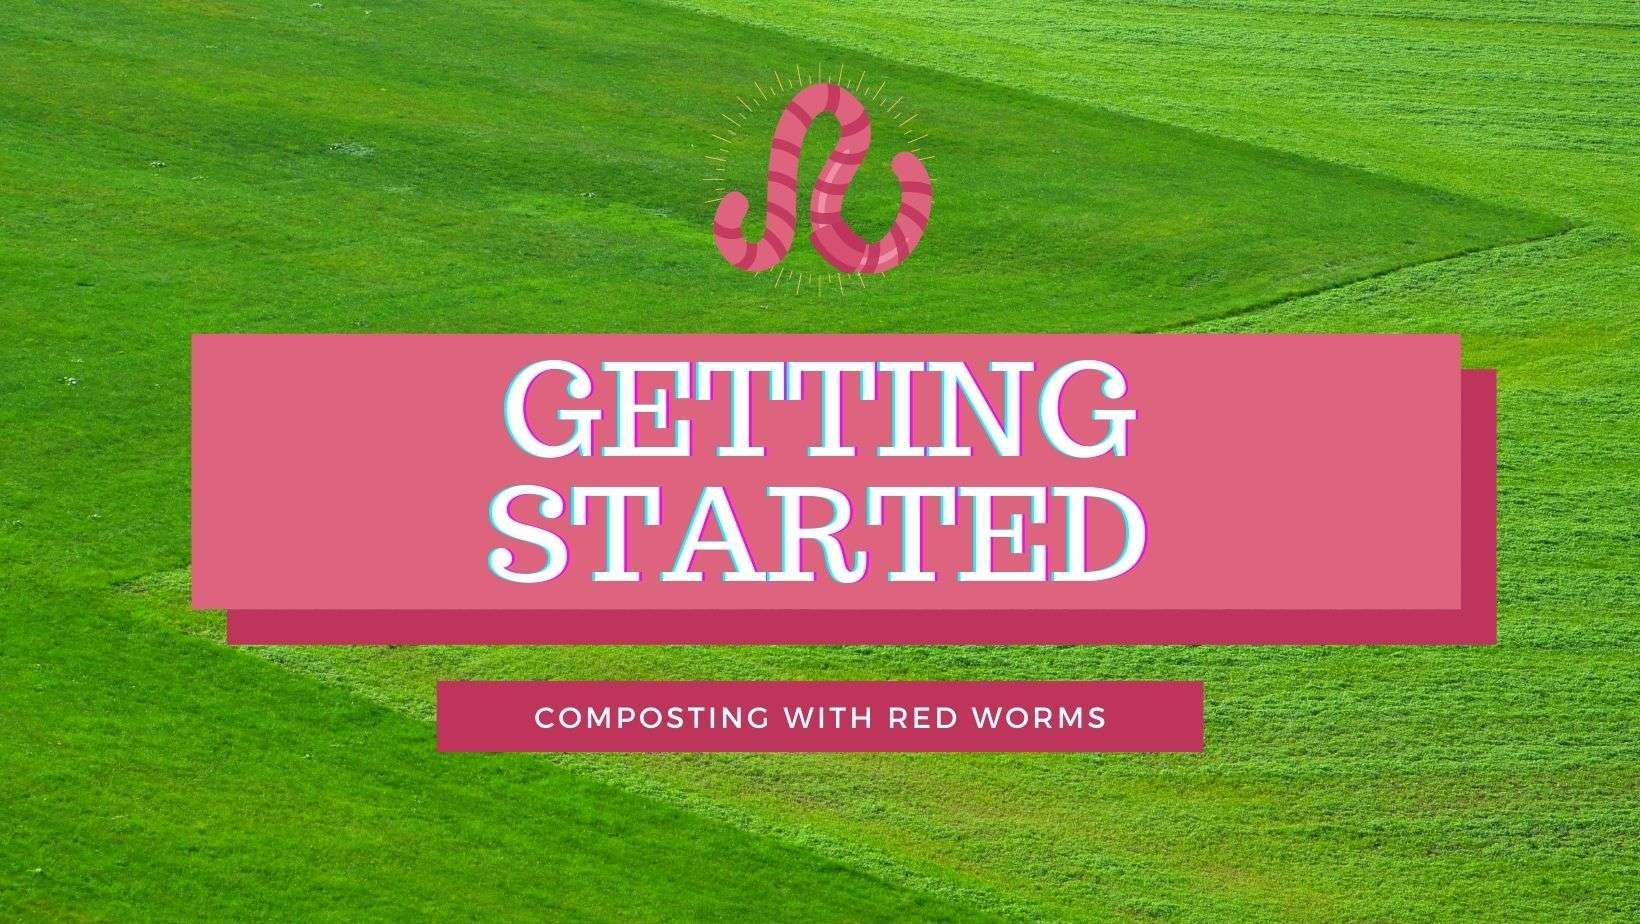 getting started with vermicomposting